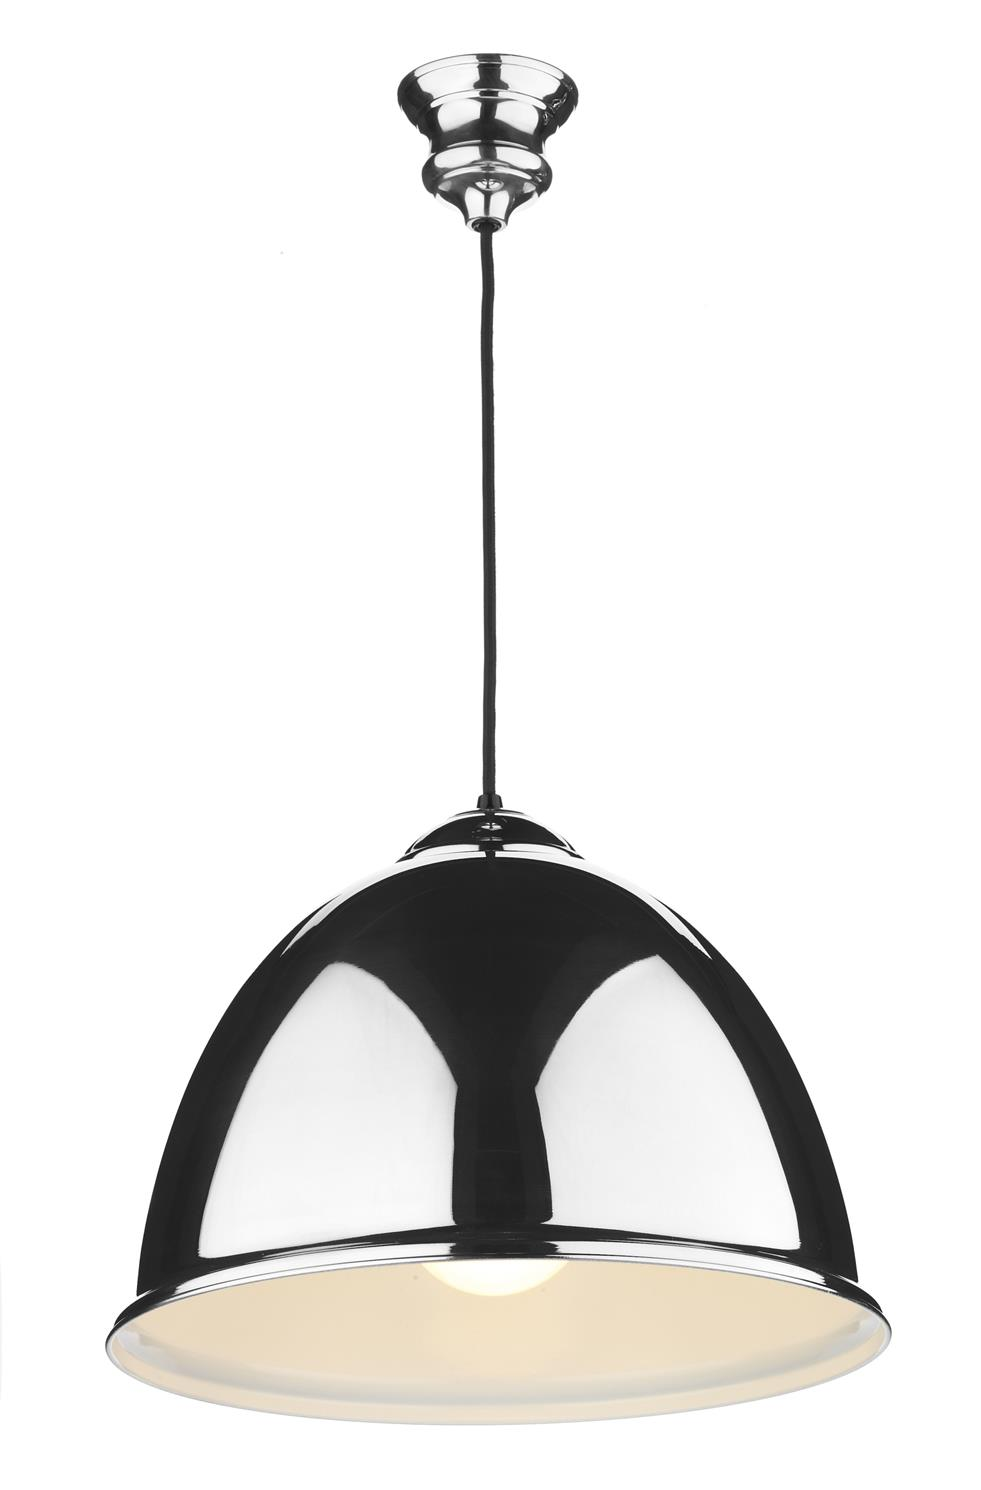 David Hunt Lighting EUS0122 Euston 1 Light Pendant in Polished Chrome with Cream Inner